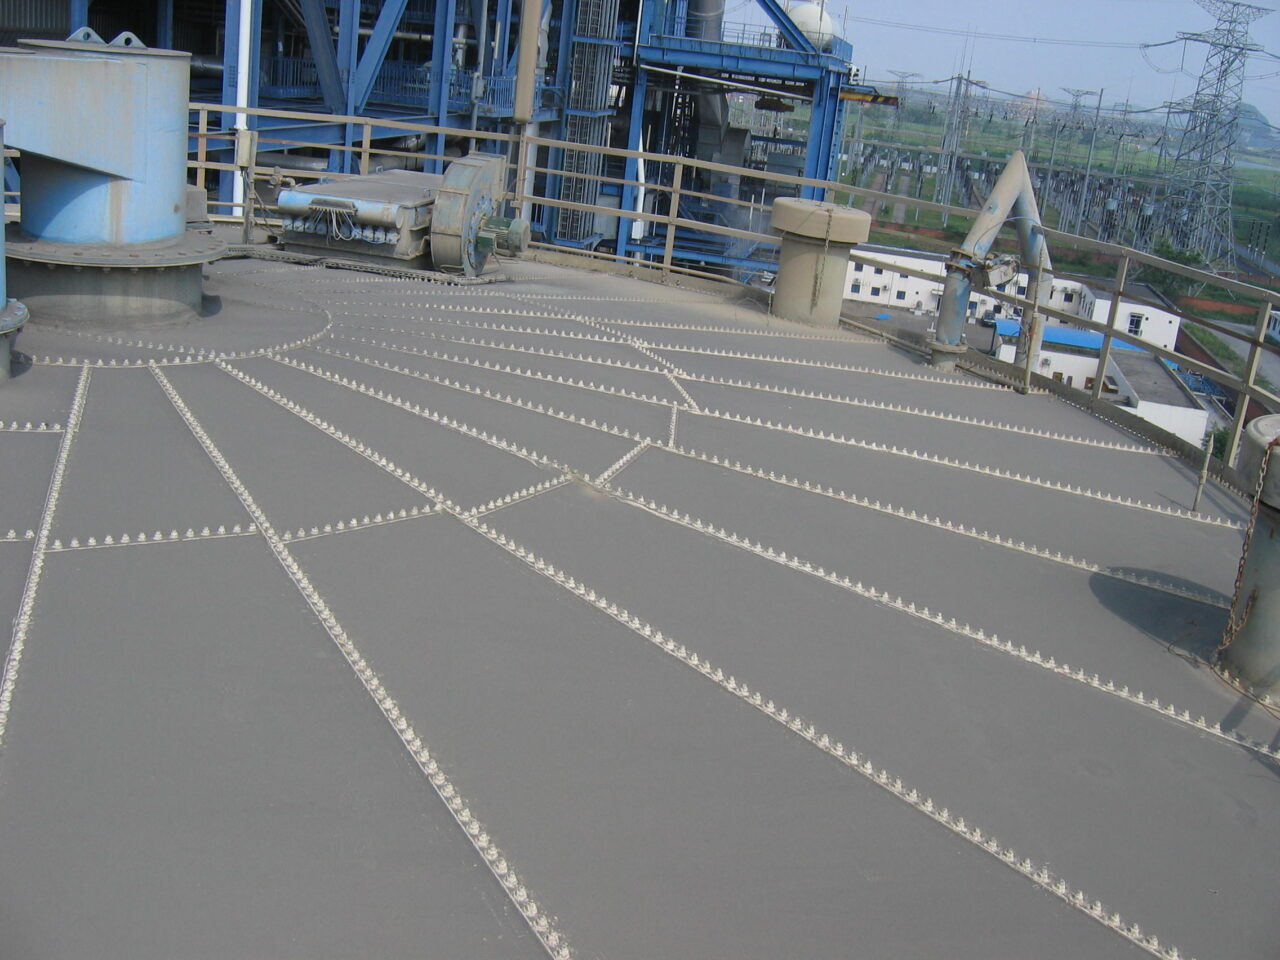 Joints sealed and substrate reinforced with Flexible Membrane system